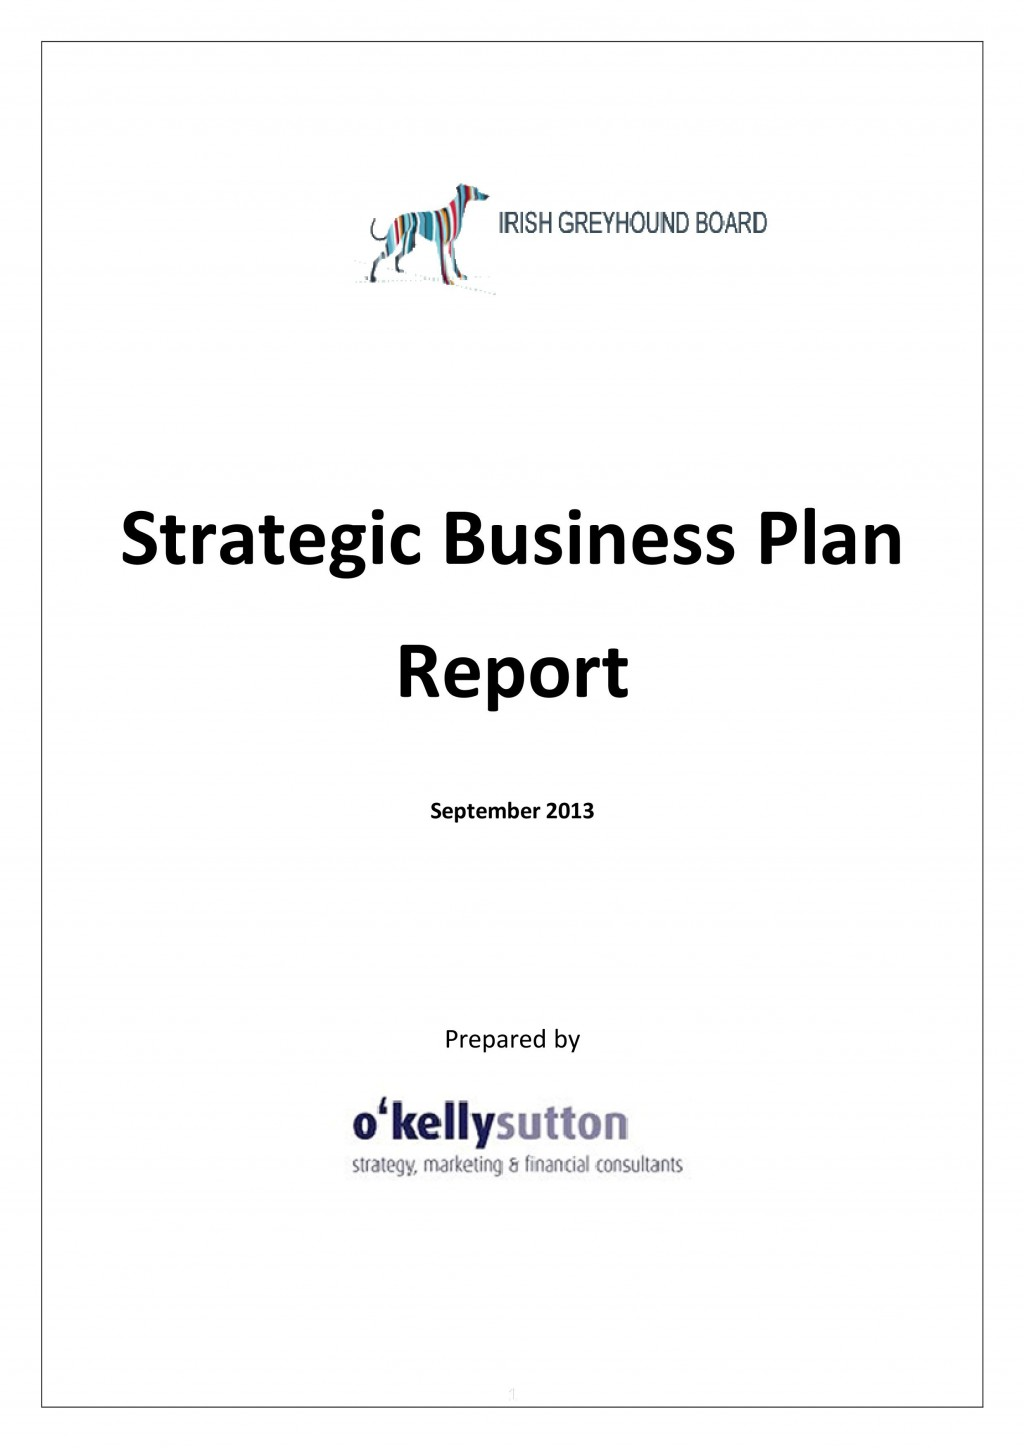 003 Awesome Strategic Busines Plan Template Highest Quality  Doc Word SampleLarge